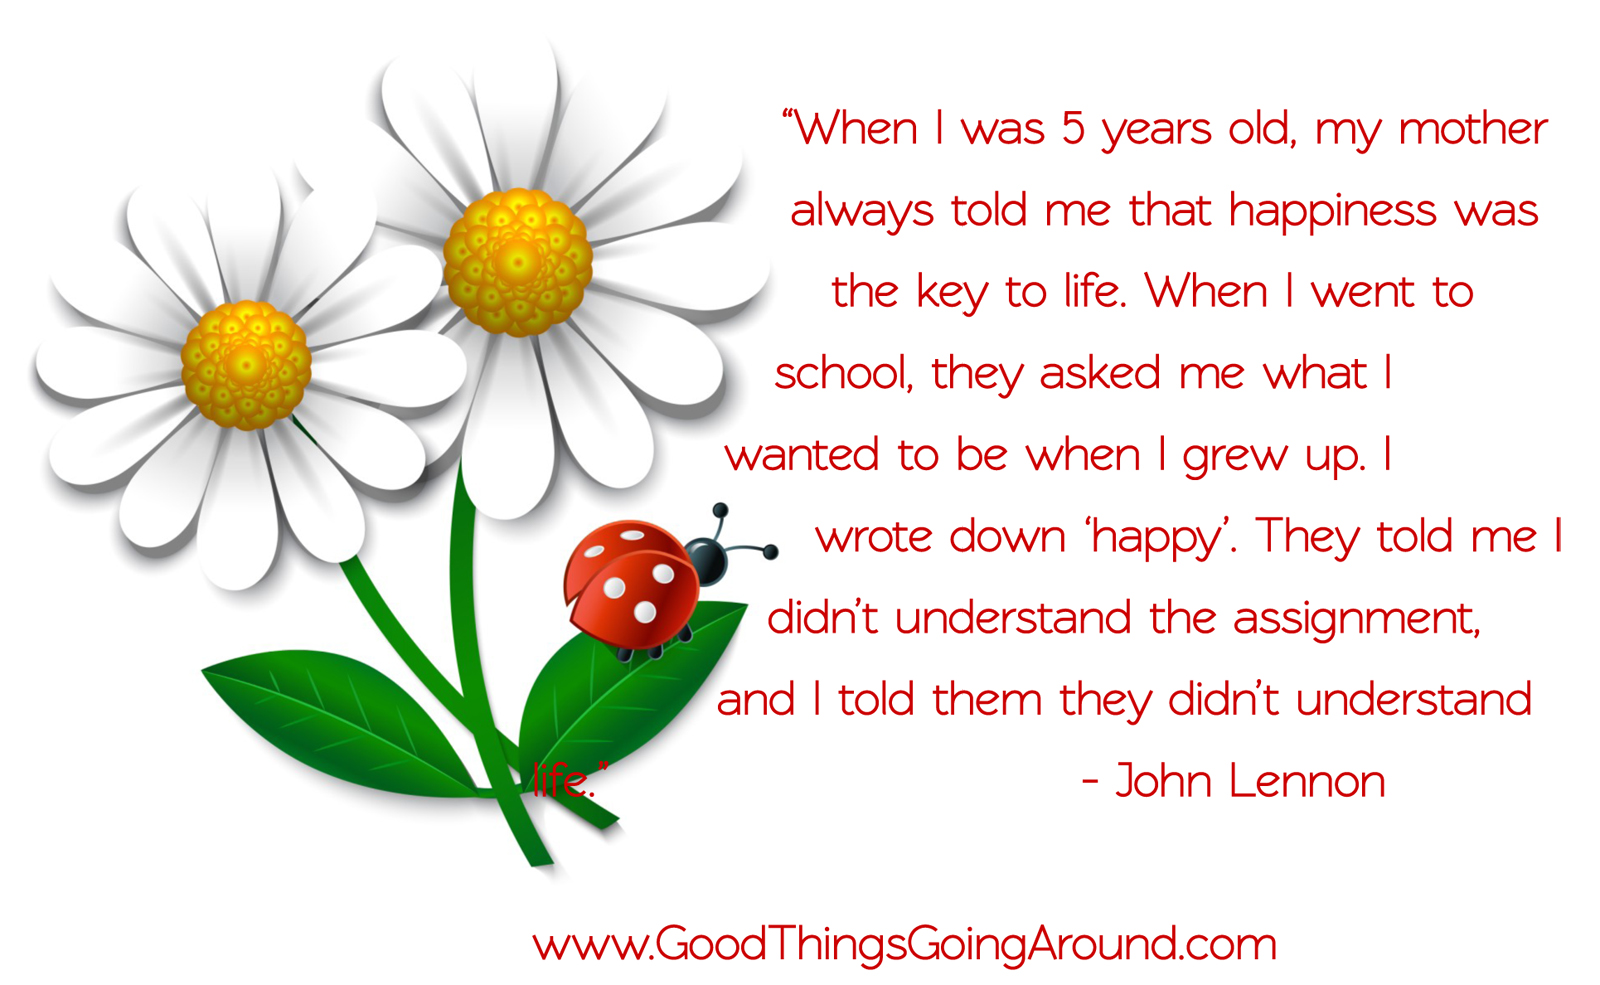 quote on happiness from John Lennon